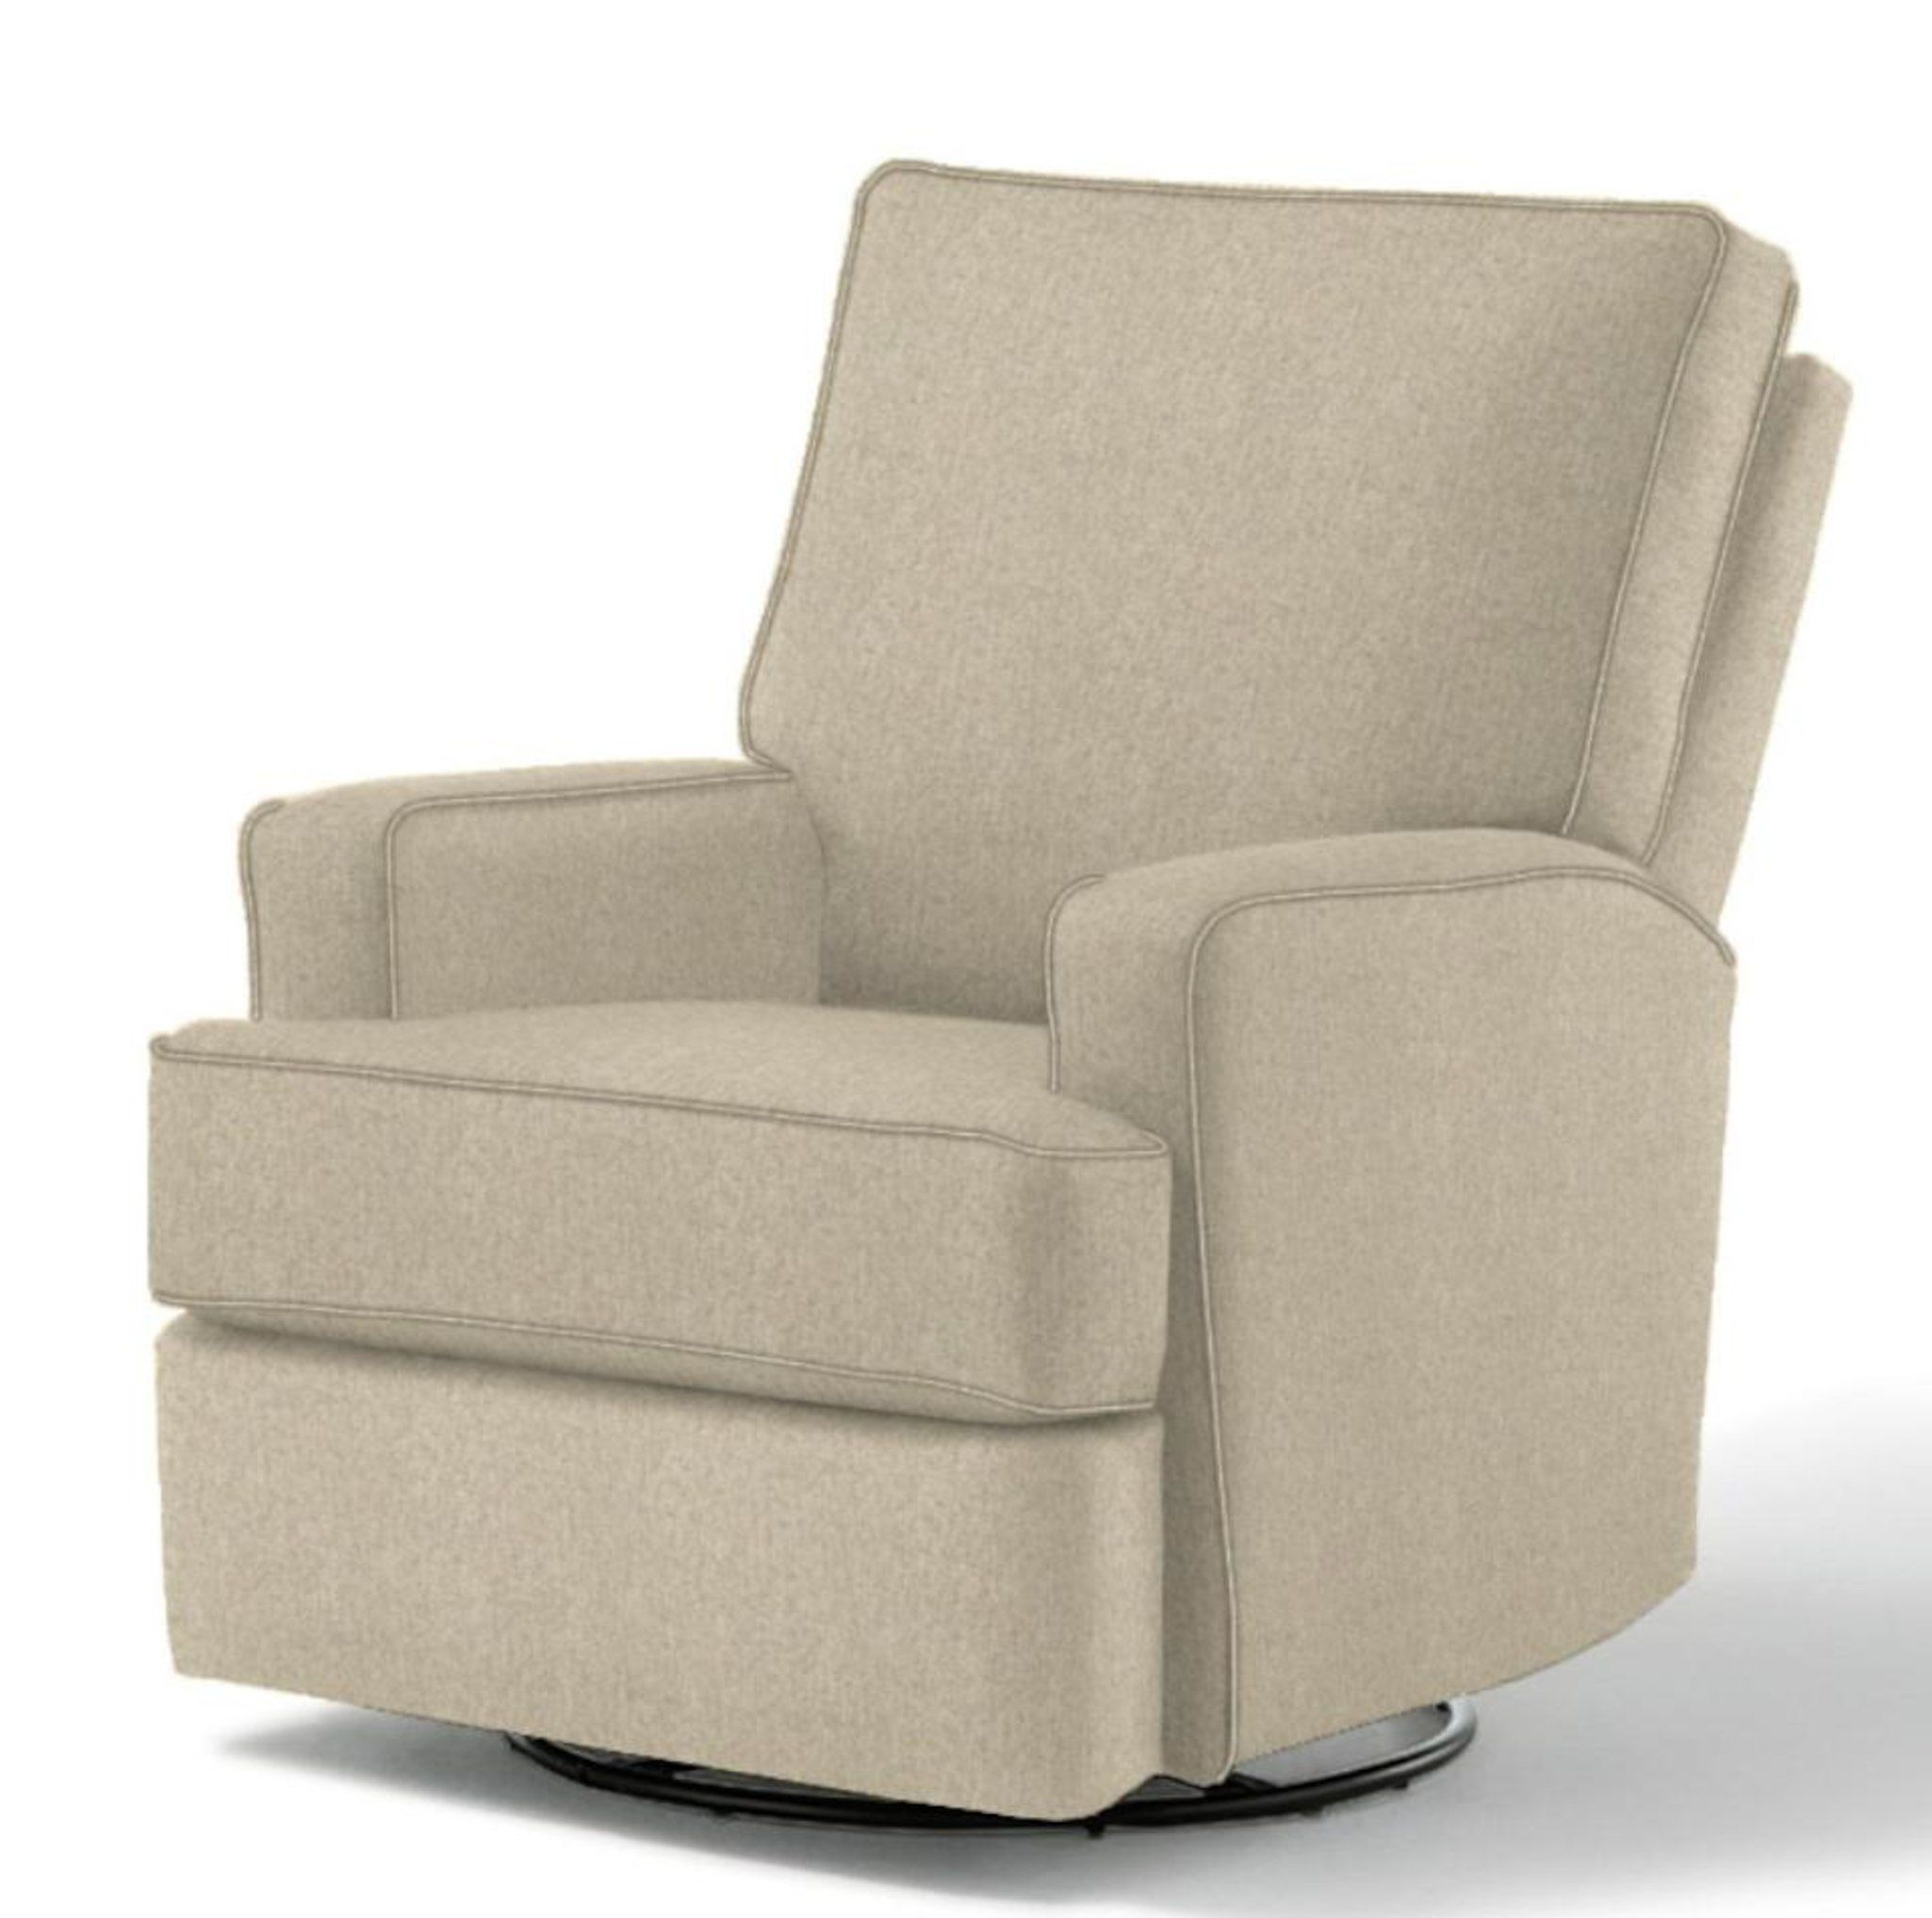 Best Chairs Kersey Swivel Glider Recliner Stone Home Decor